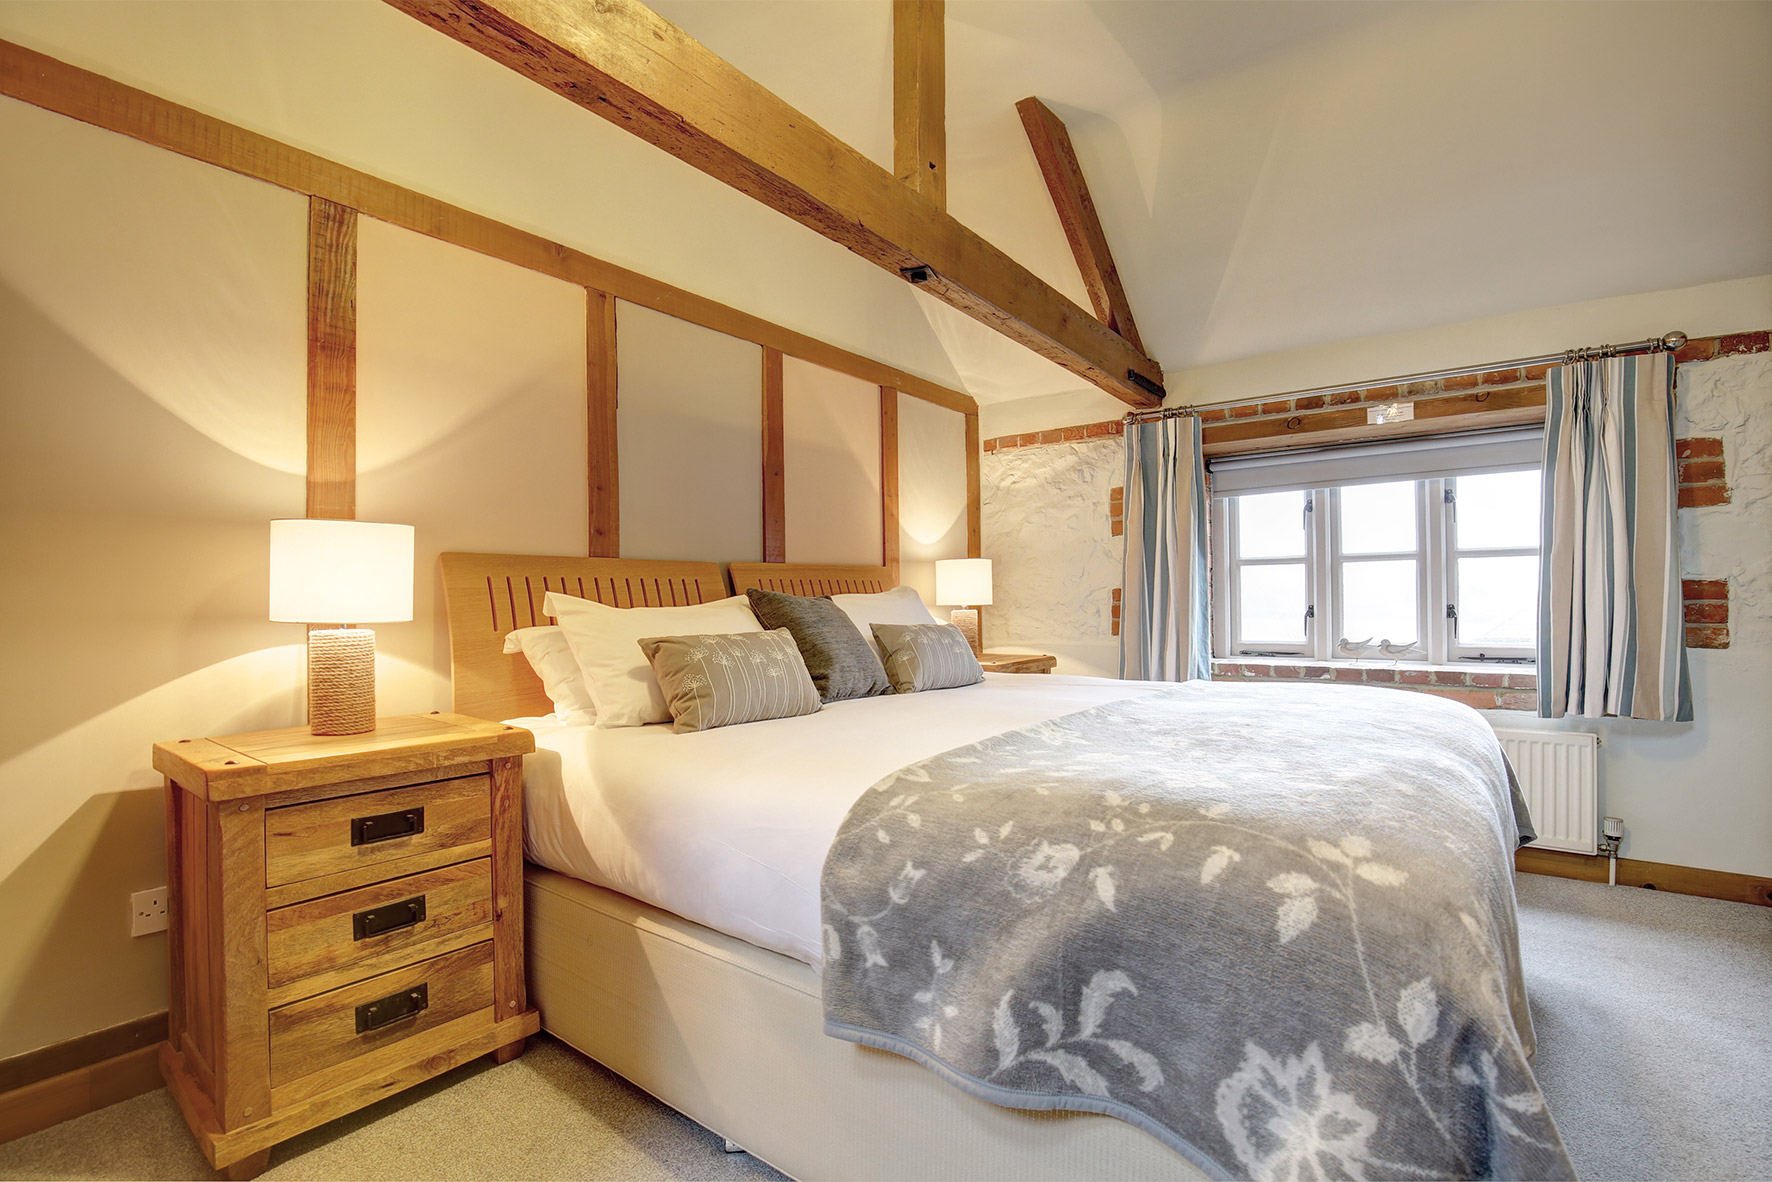 Lavender Barn - Double Bedroom 2